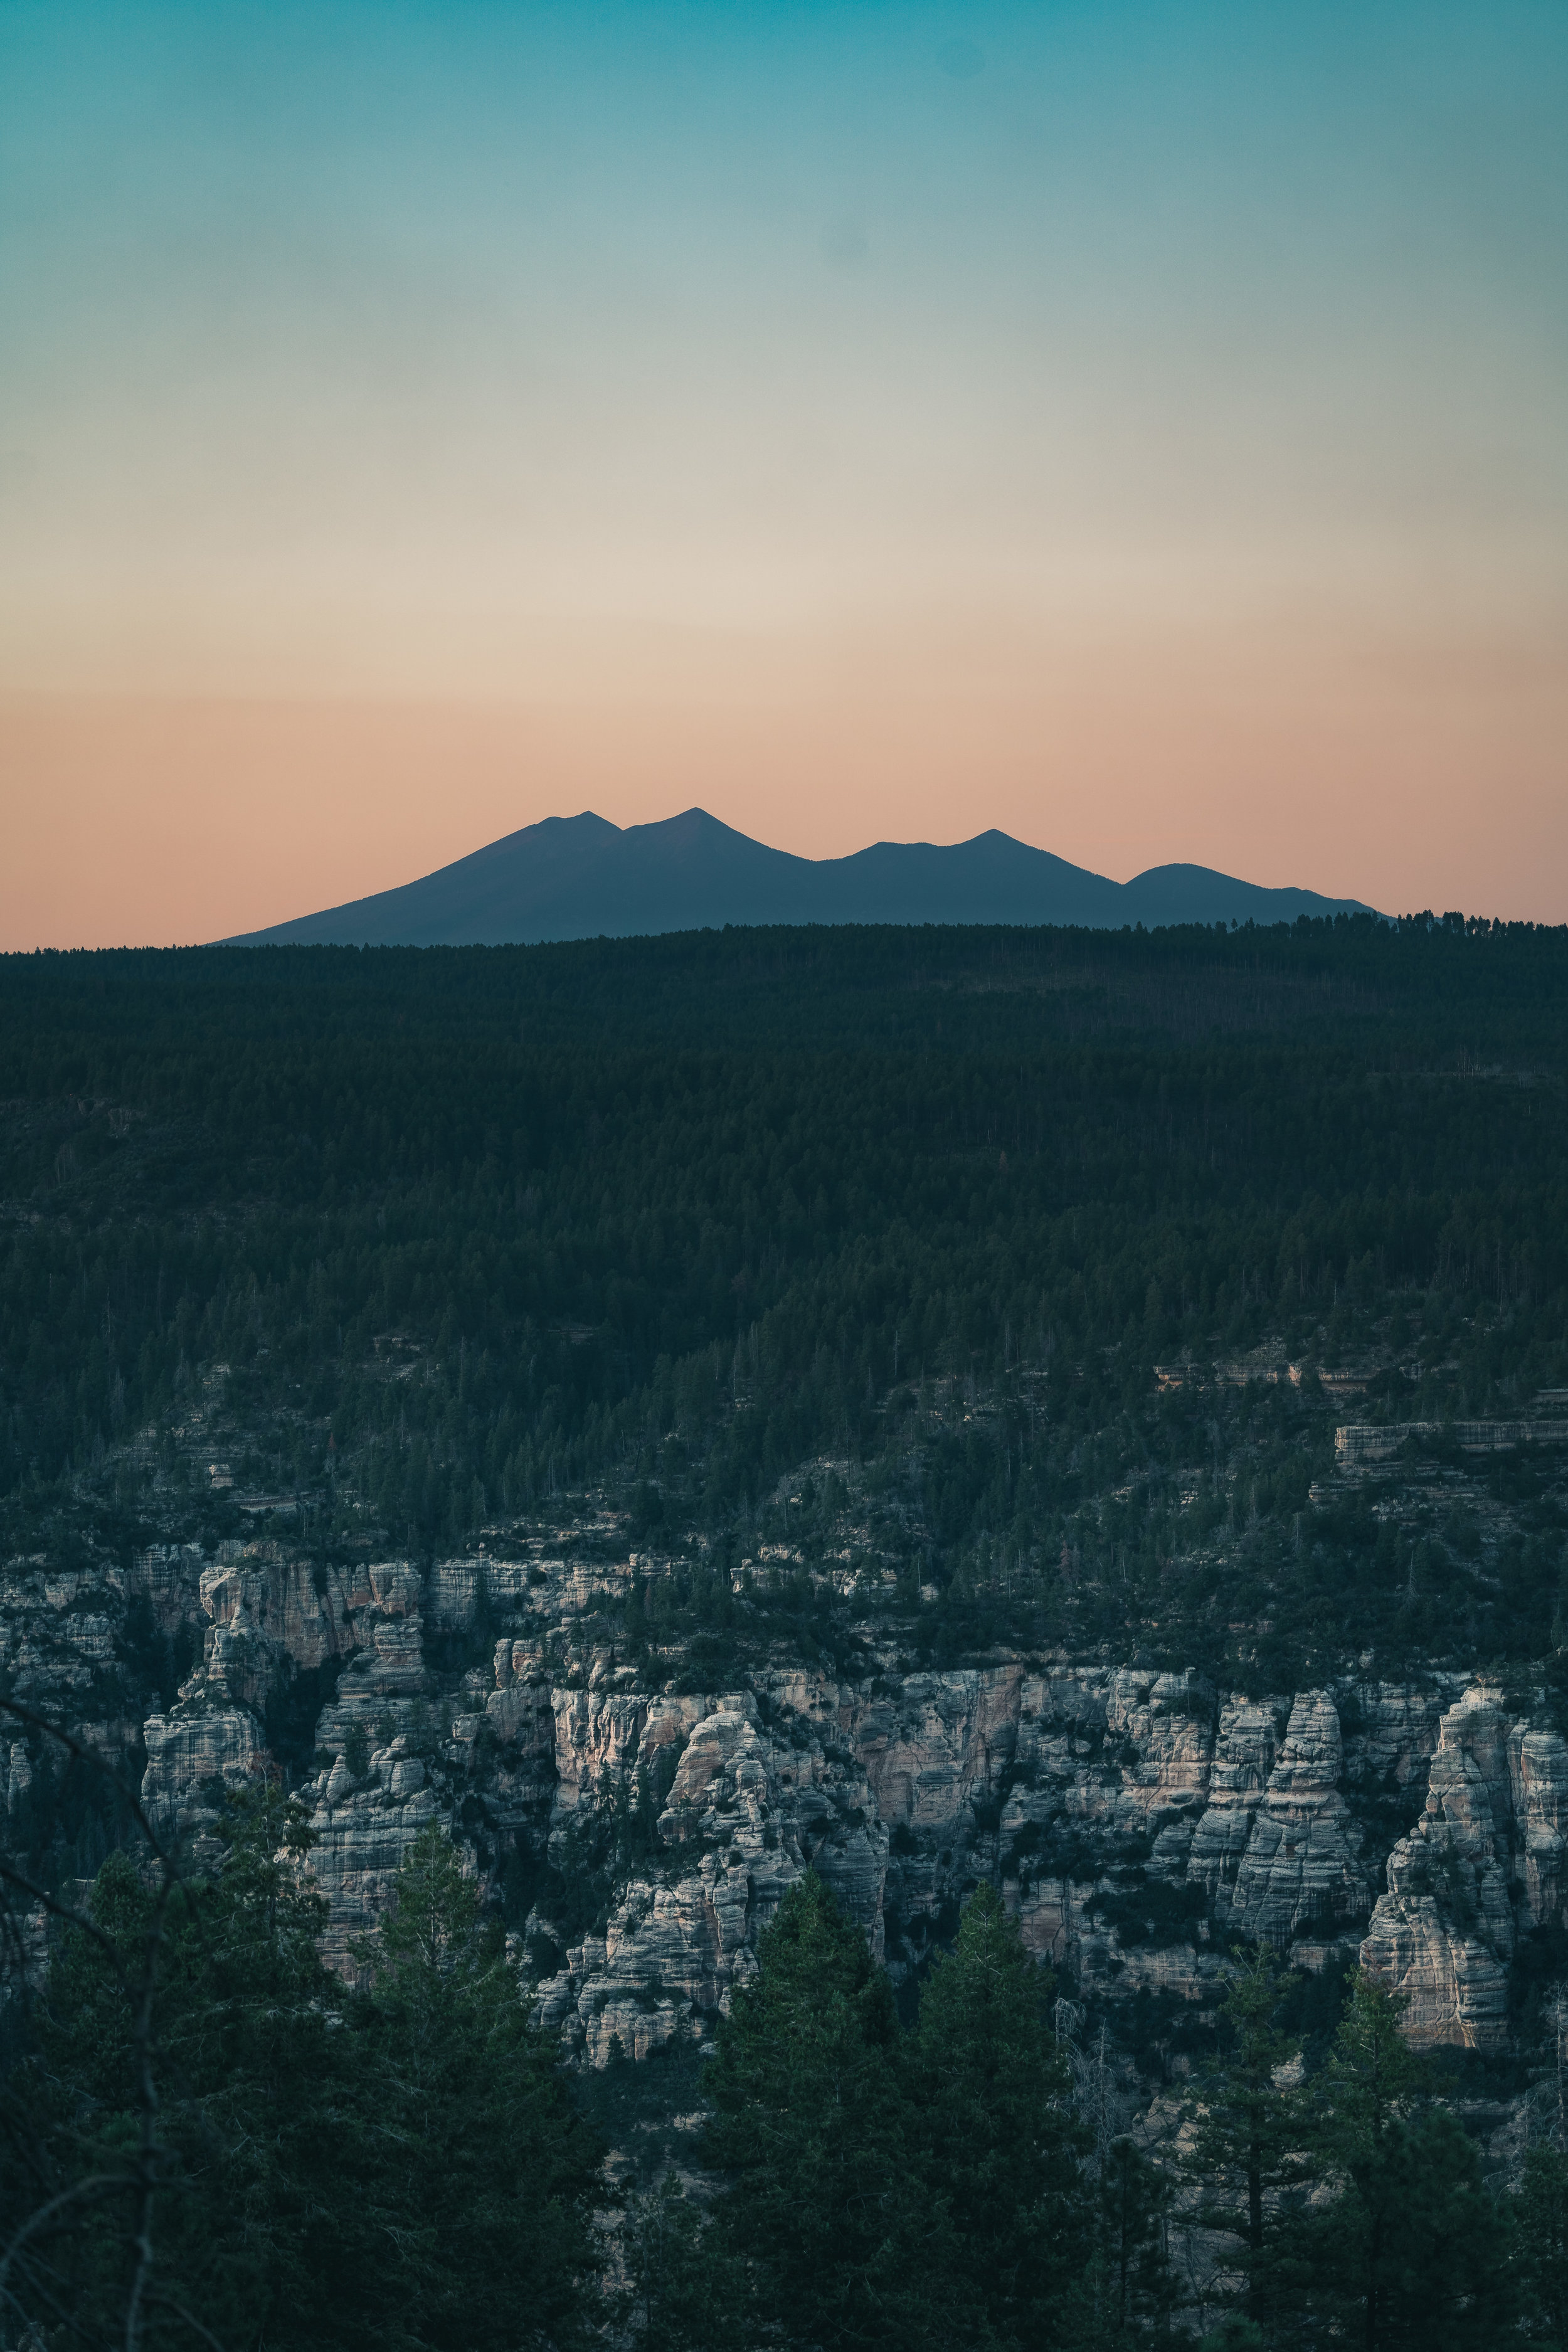 The West Fork of Oak Creek Canyon tears into the Colorado Plateau in the foreground, while San Francisco Mountain is silhouetted against the orange and teal twilight.